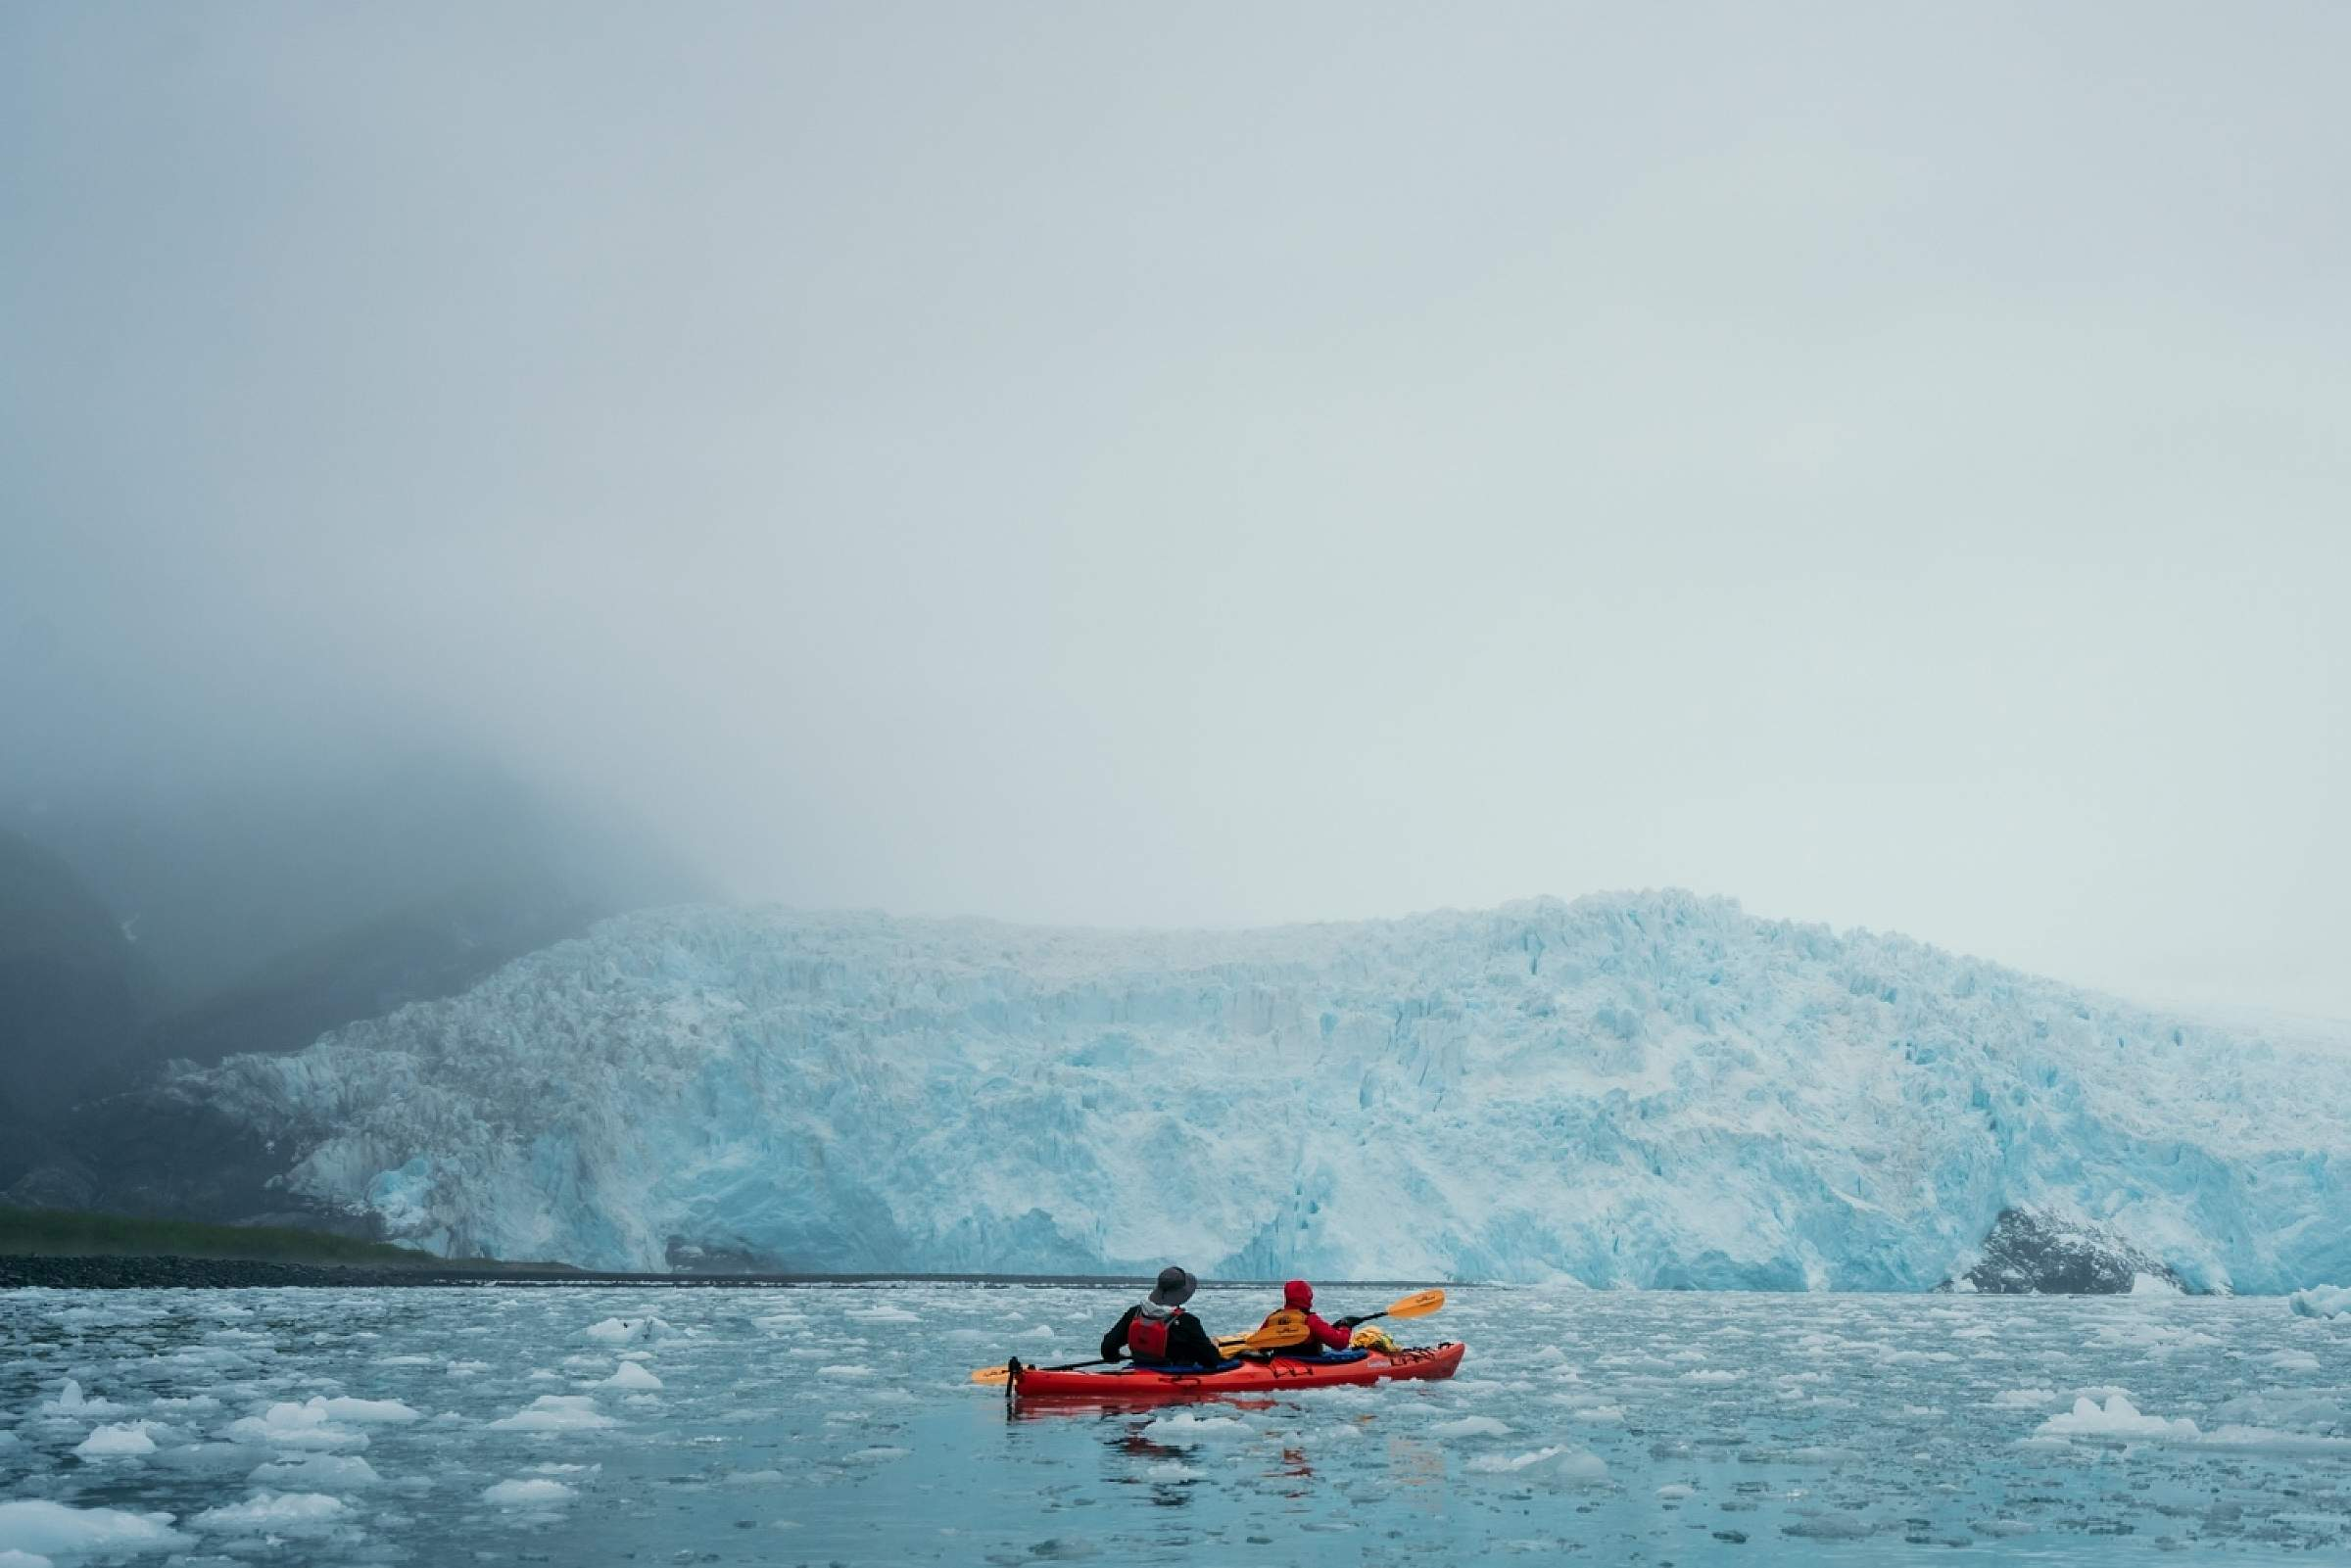 Kayakers pause in front of Aialik Glacier in Kenai Fjords National Park